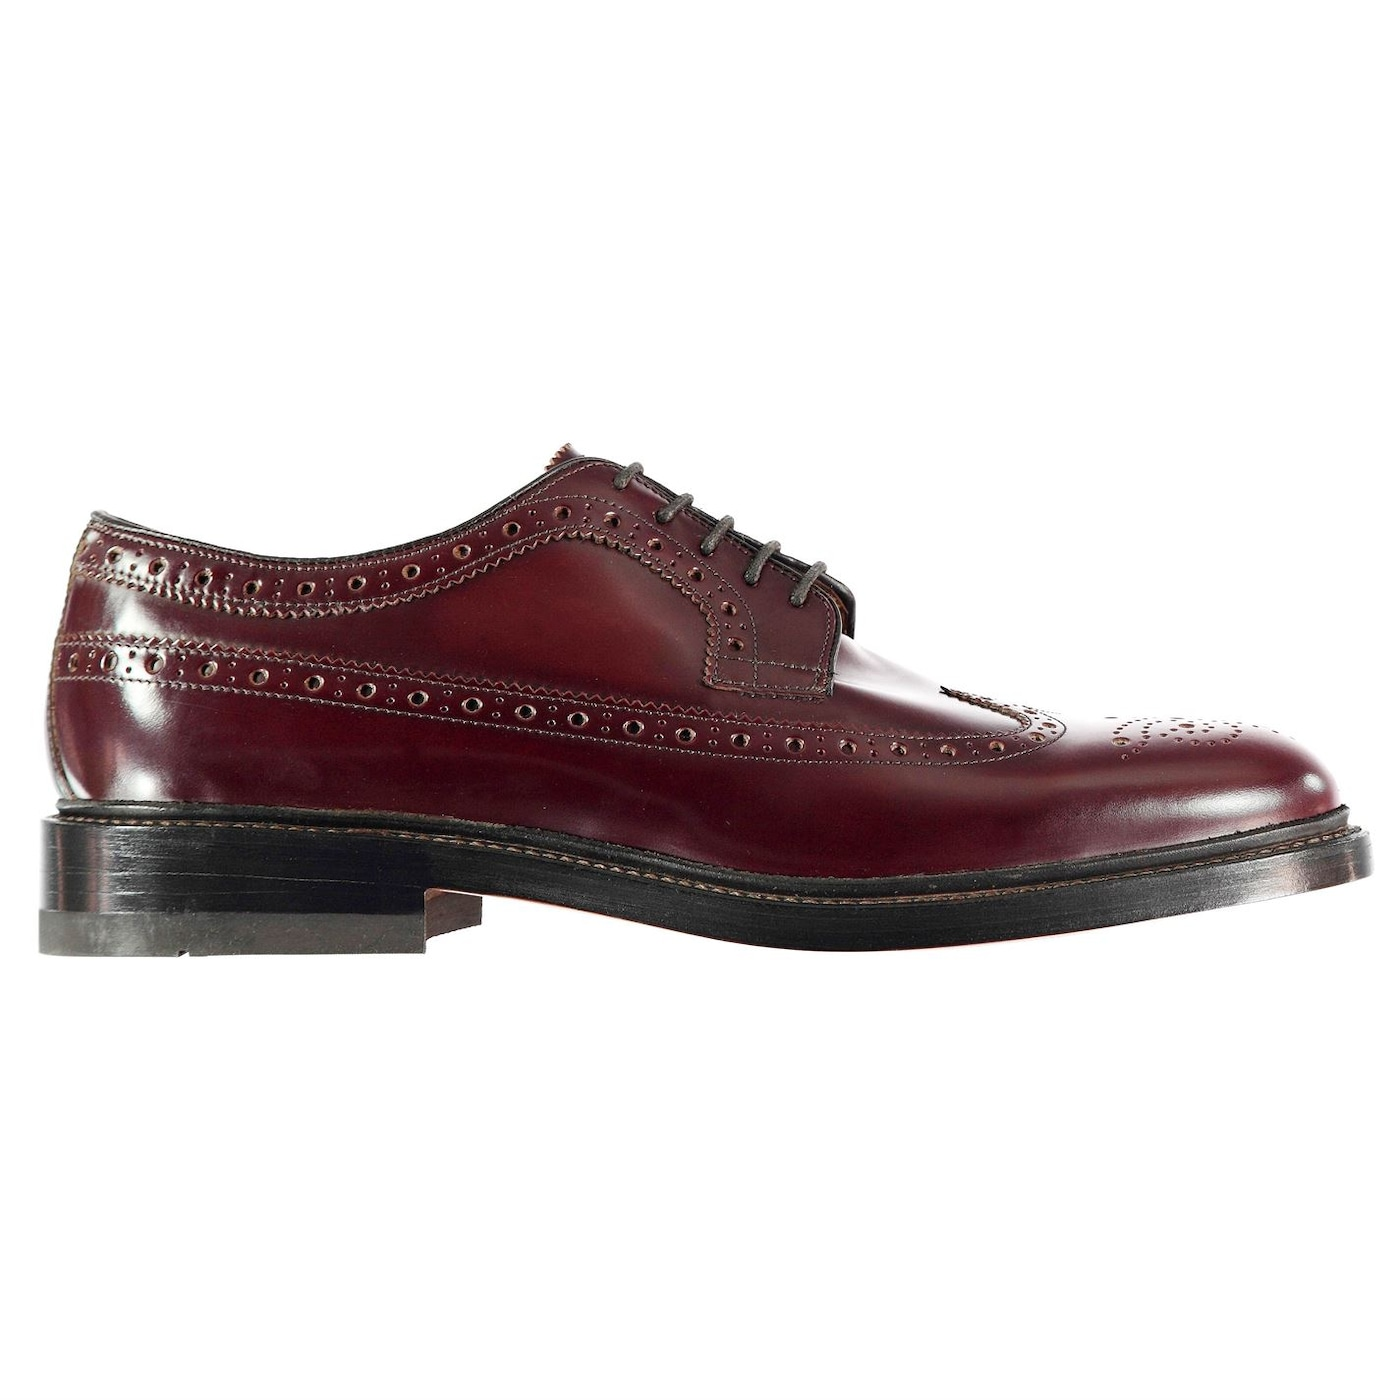 Bass Weejuns Brogue Leather Shoes